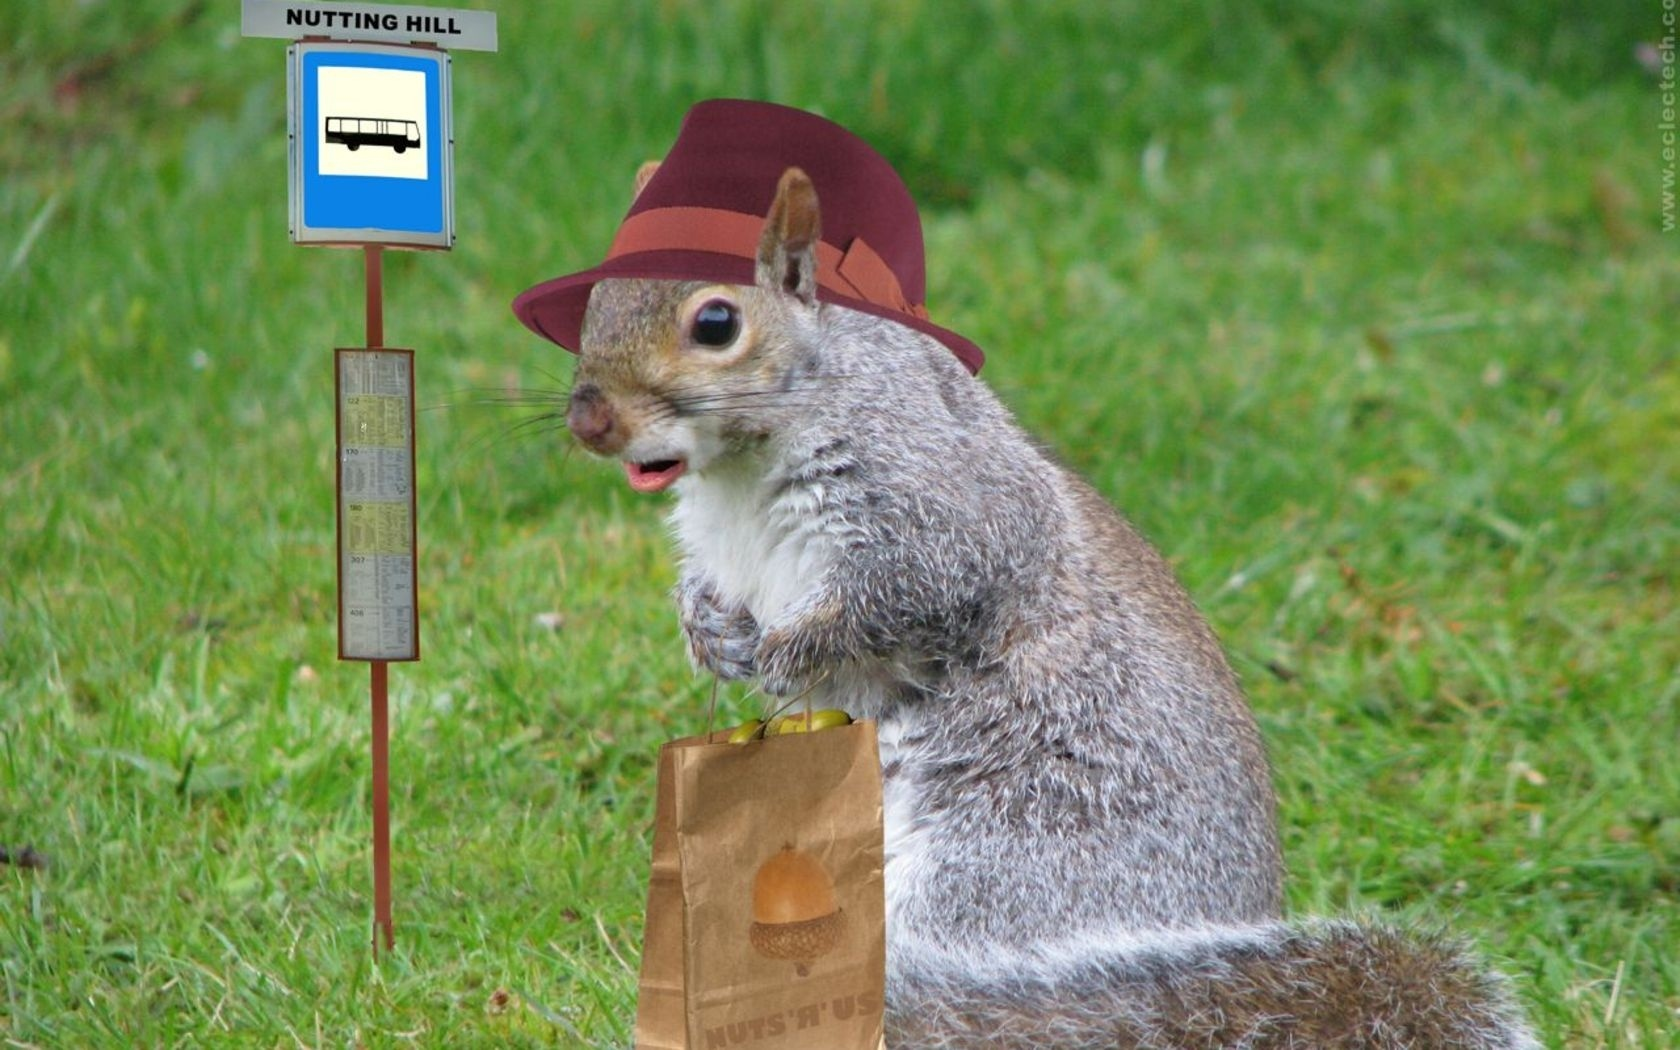 Funny world funny squirrel images - Funny squirrel backgrounds ...